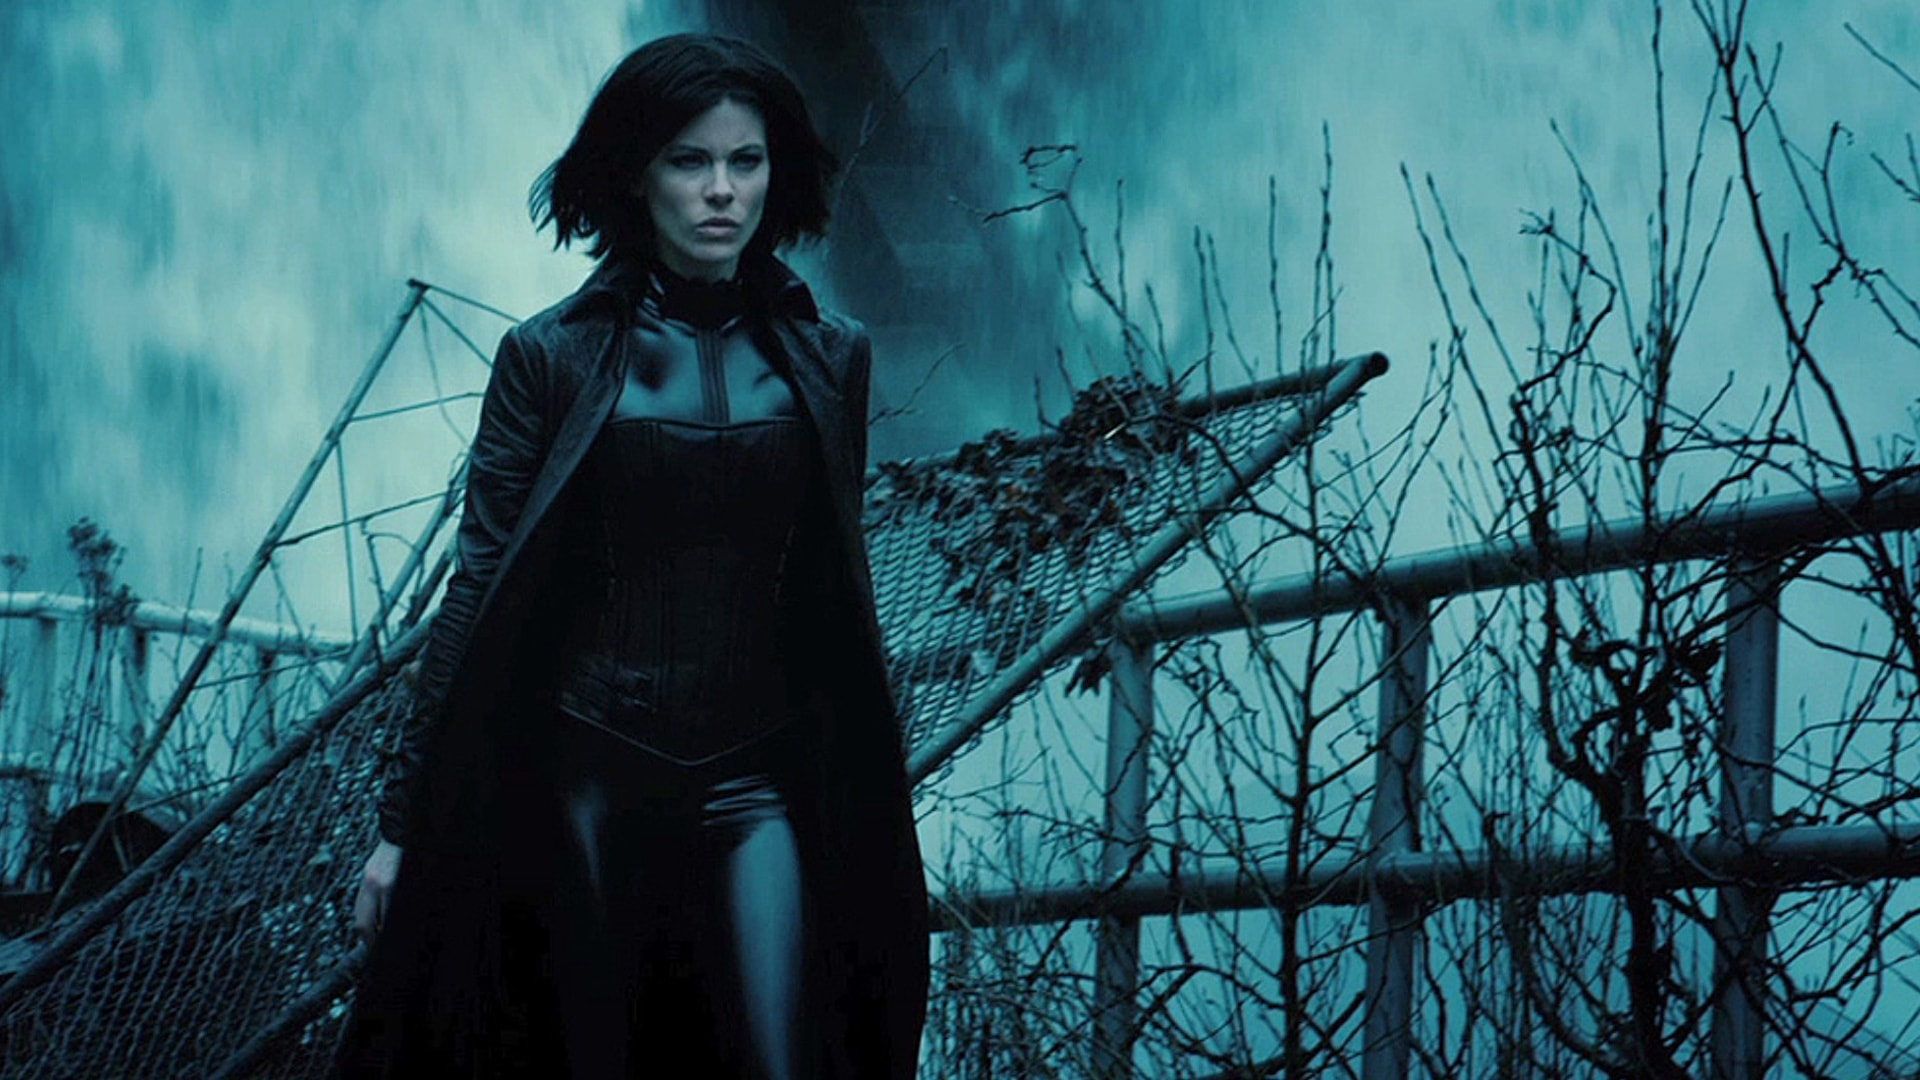 Underworld: Blood Wars Backgrounds